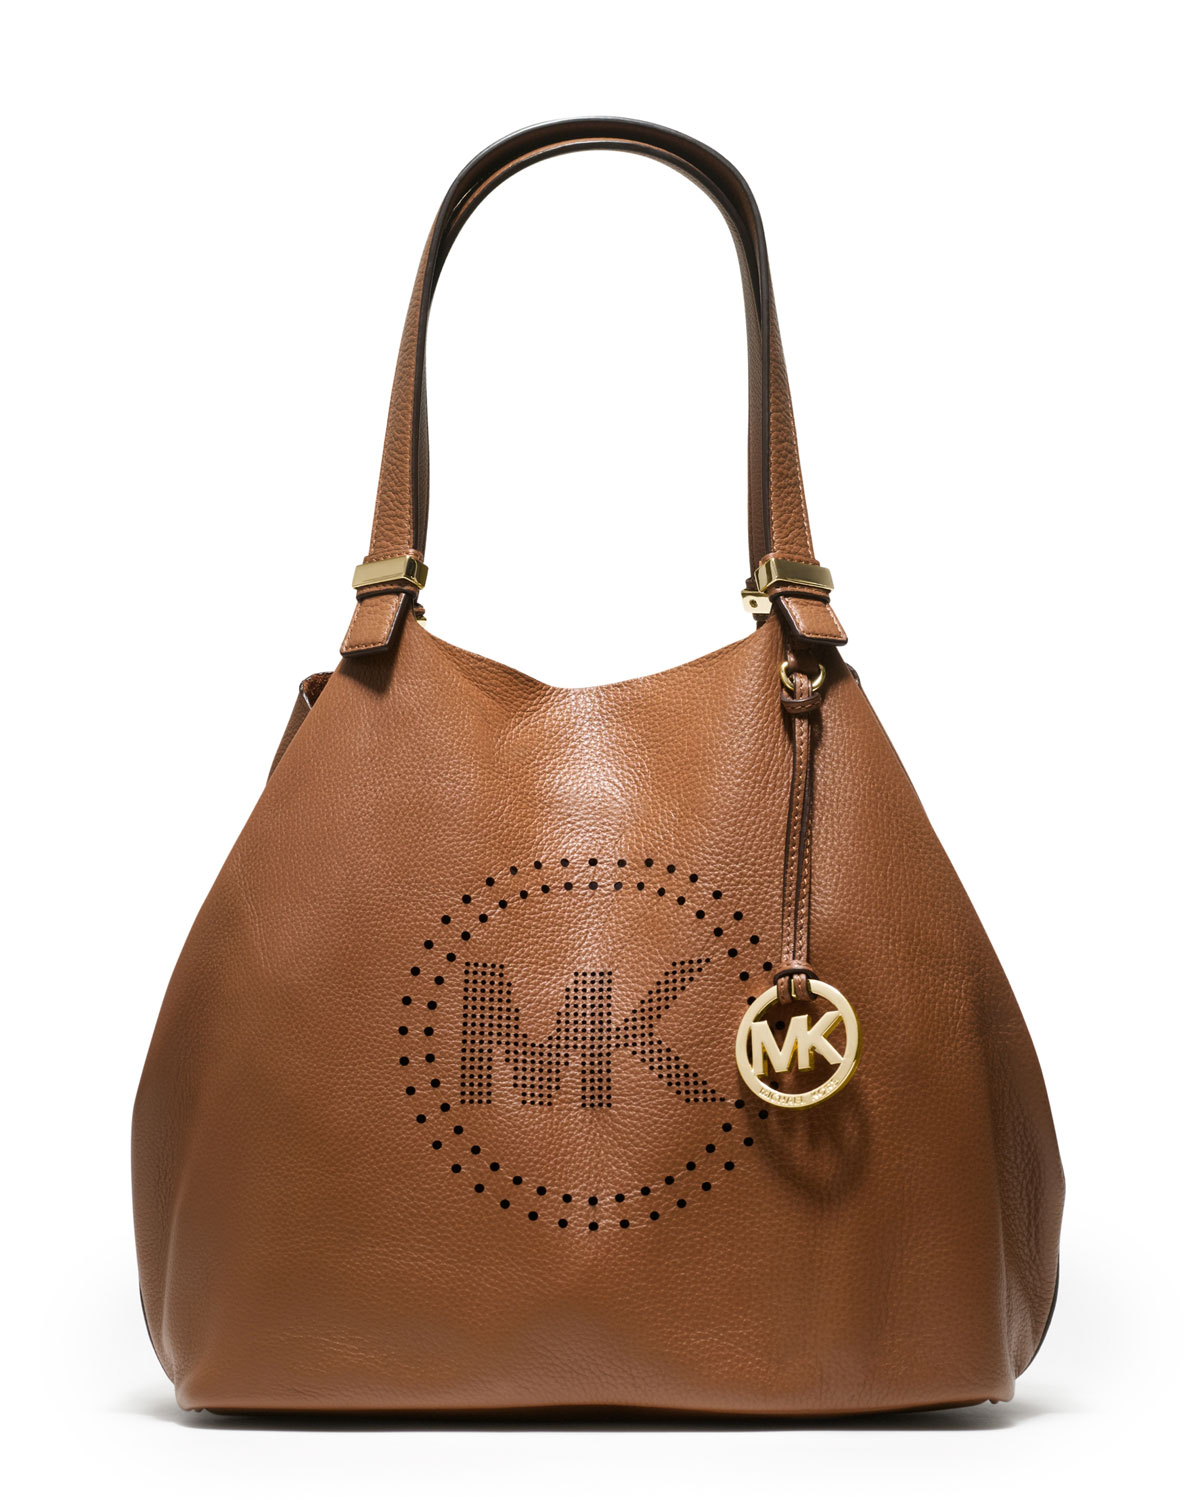 michael kors large perforated logo grab bag in brown lyst. Black Bedroom Furniture Sets. Home Design Ideas